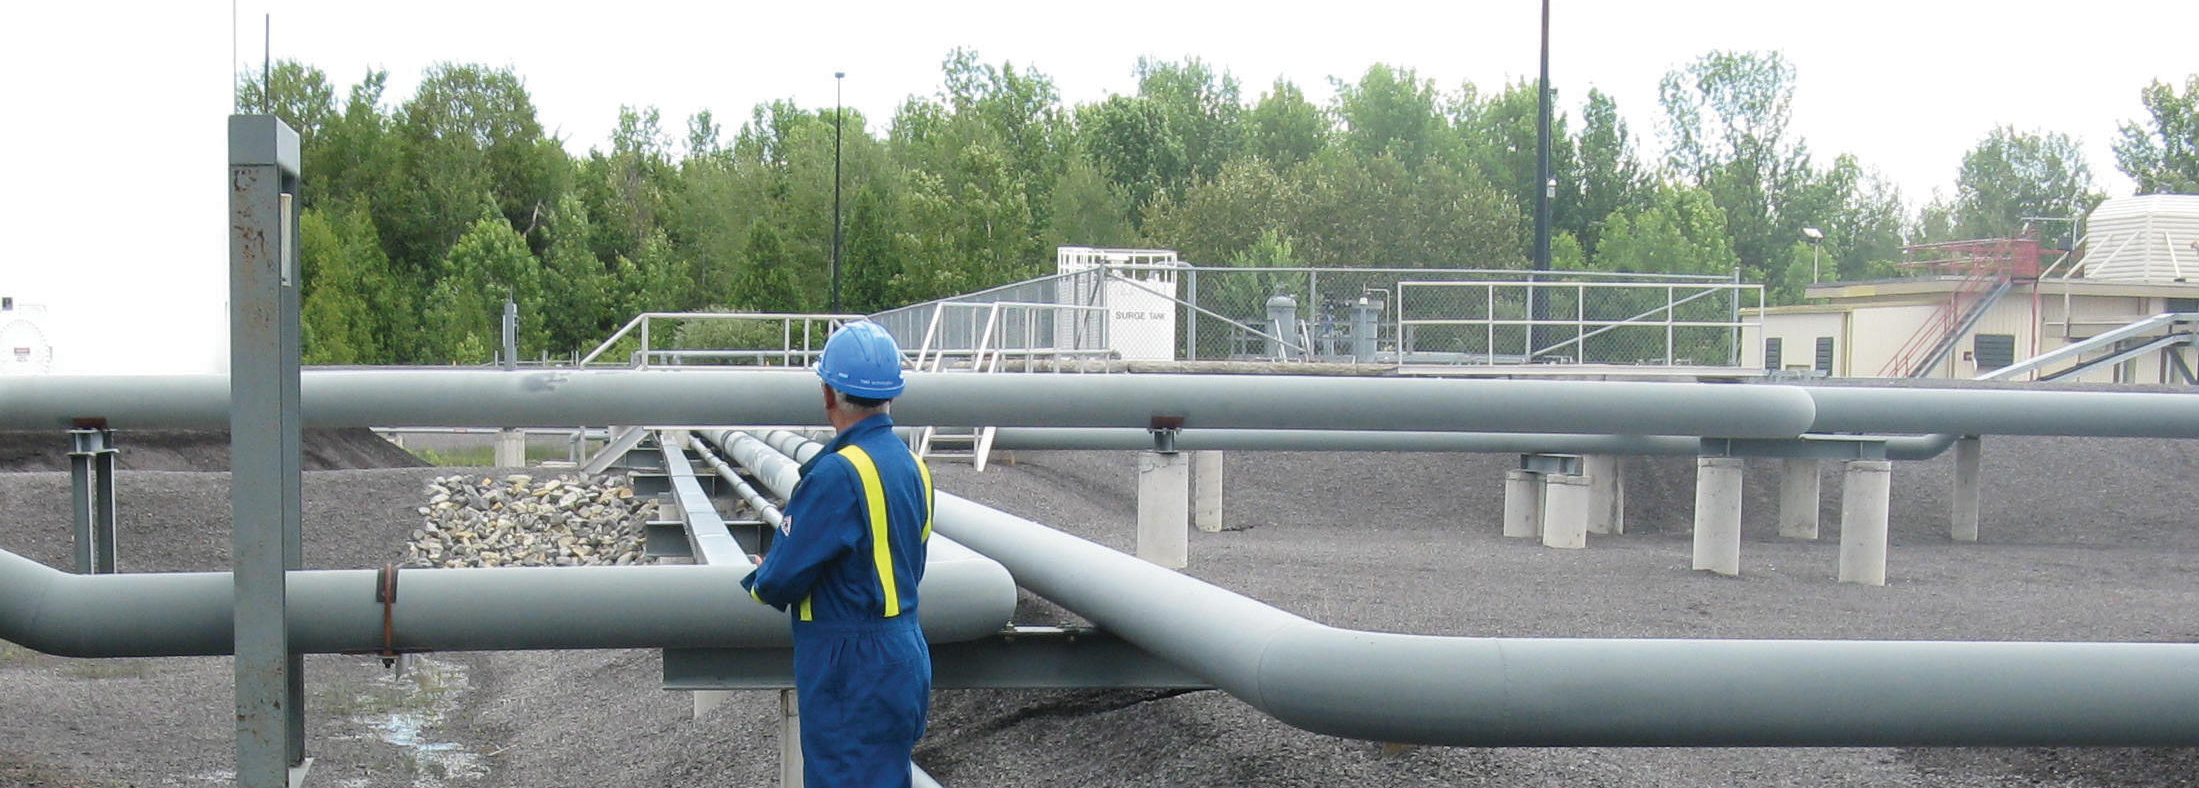 Image d'inspection de pipelines par Trans-Northern Pipelines Inc. (TNPI)